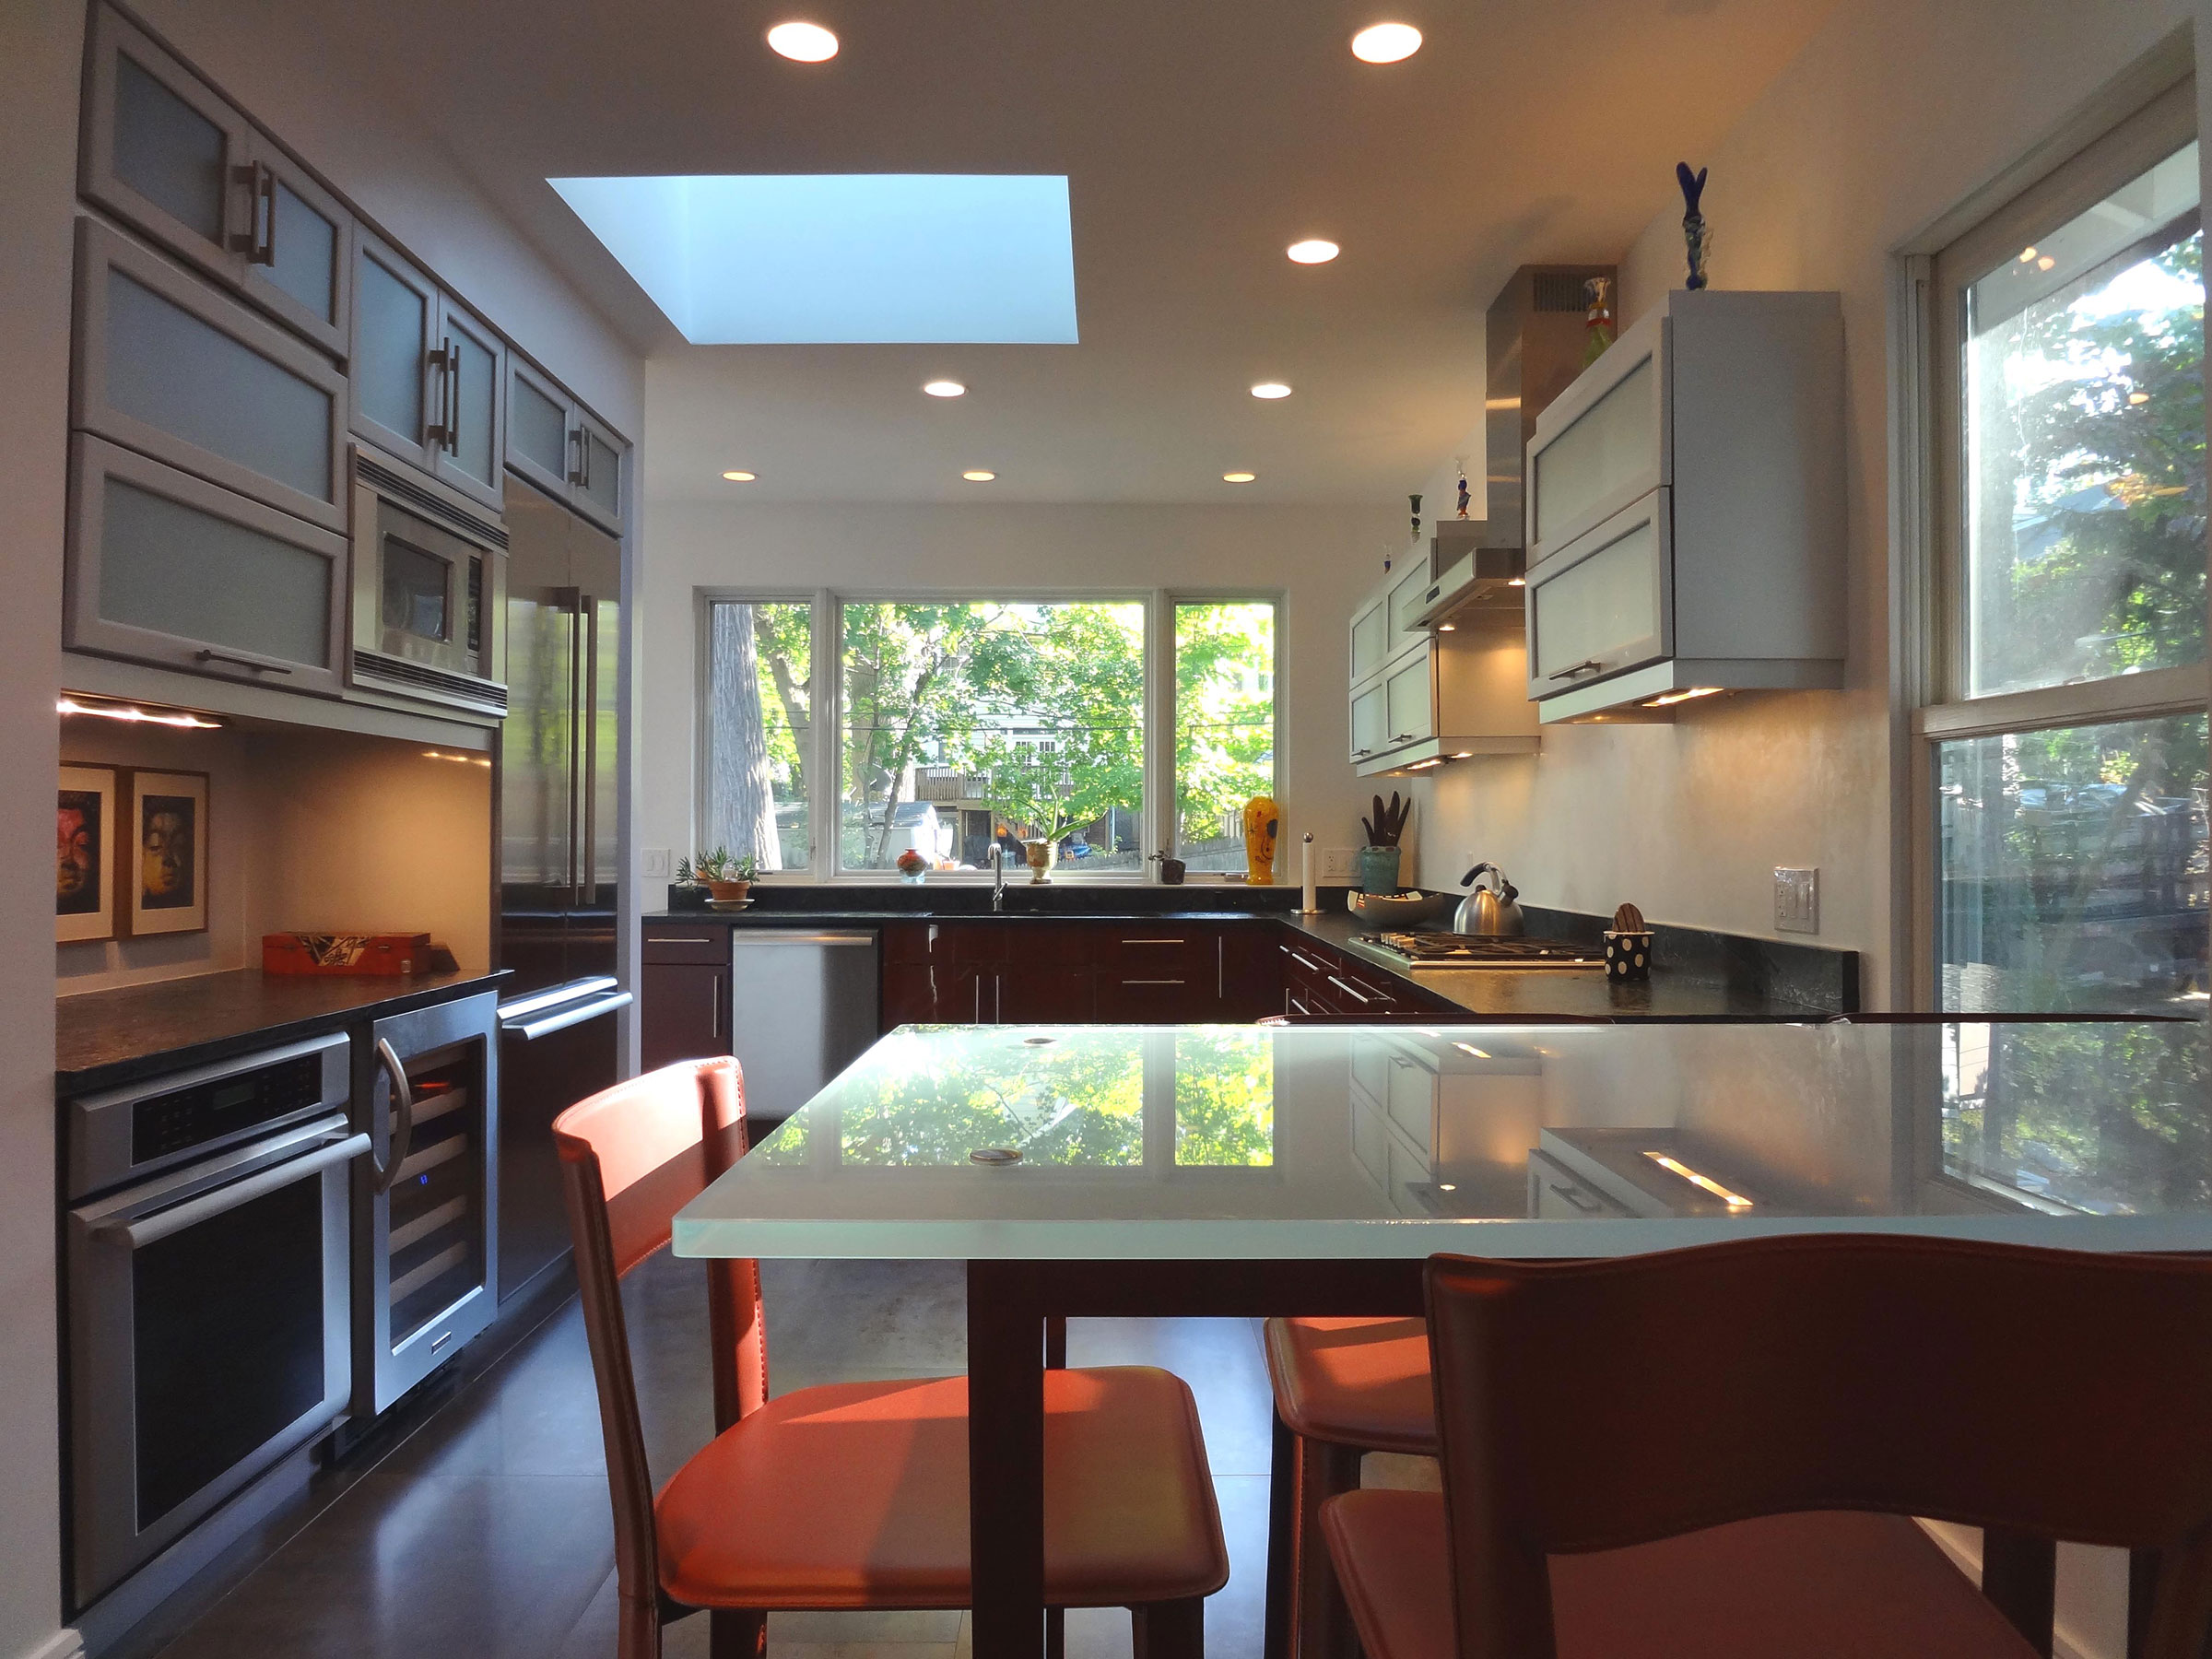 4-Kitchen-looking-out